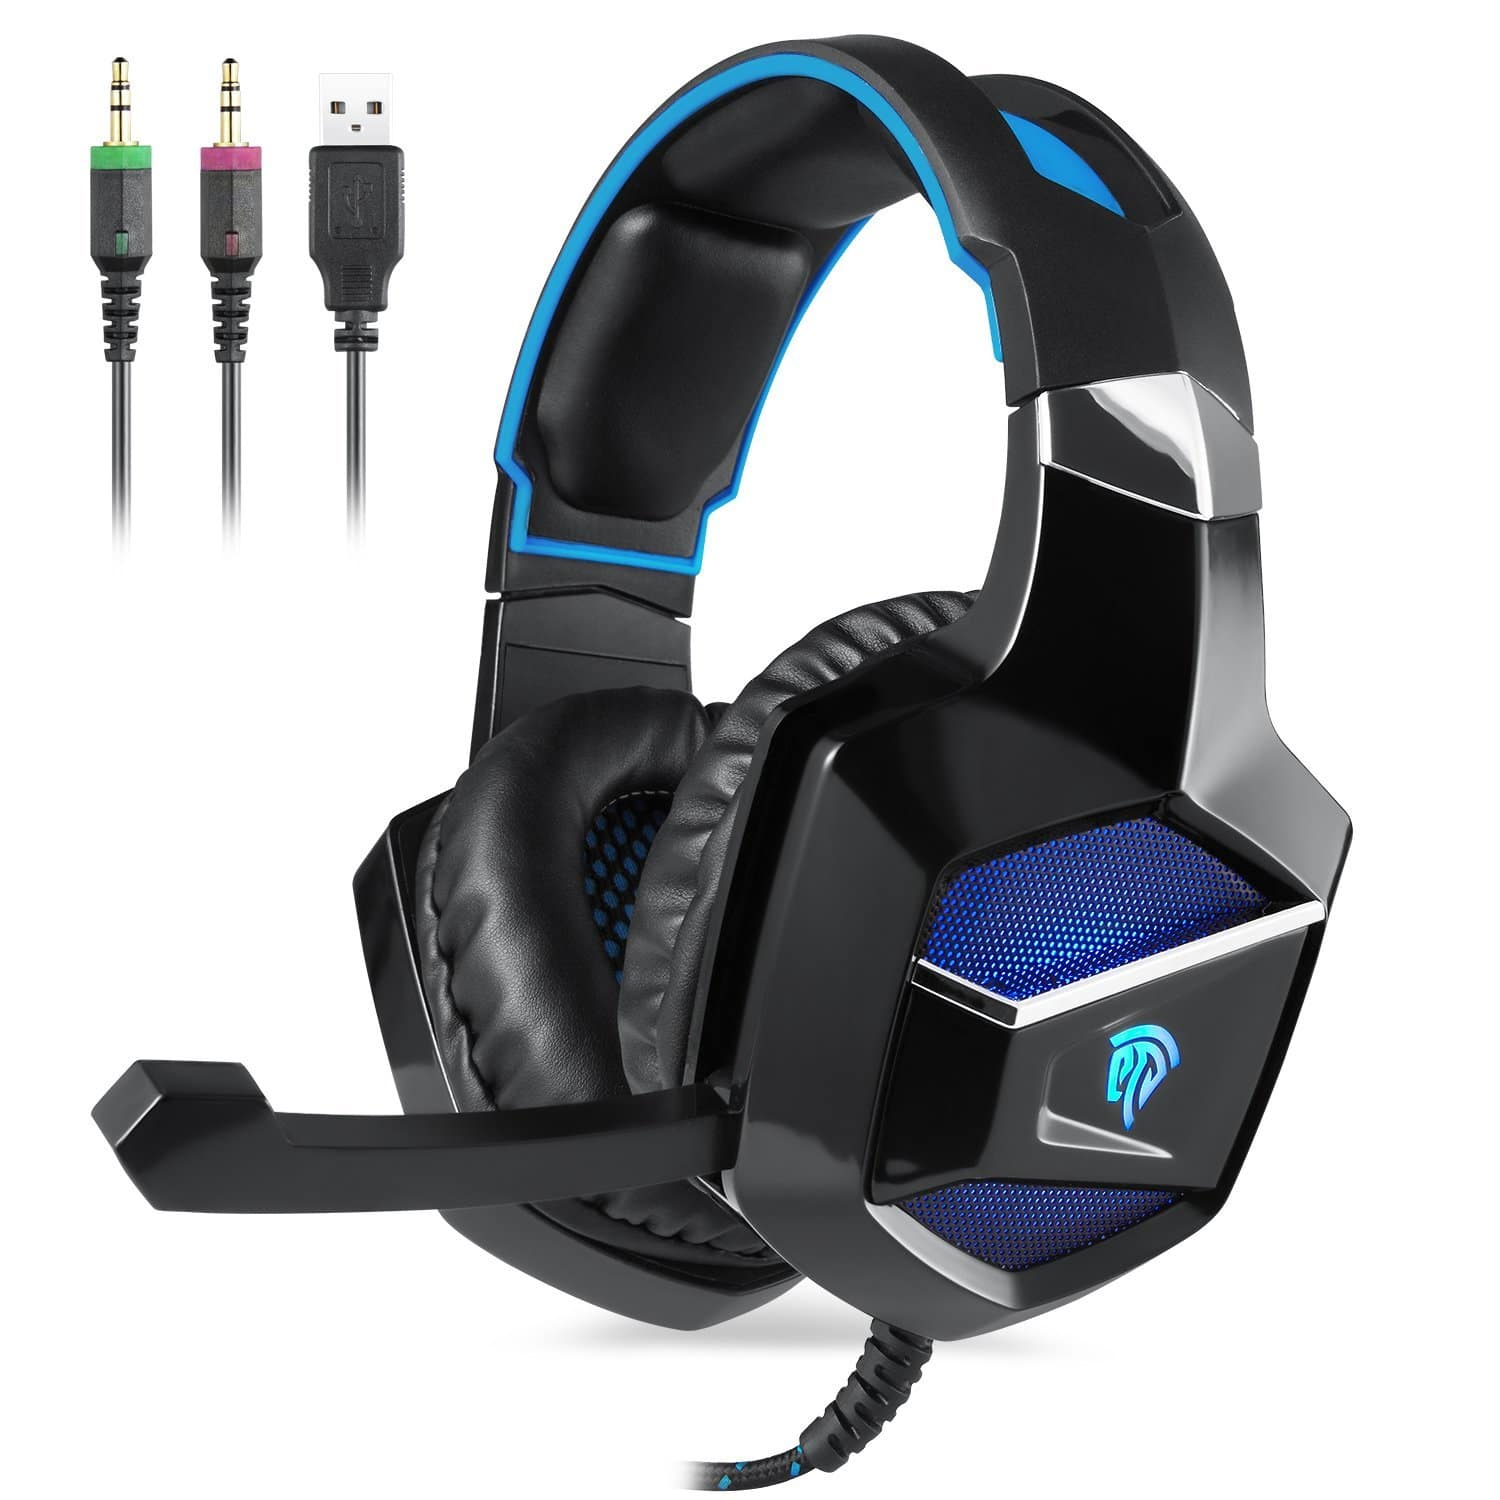 EasySMX K5 New Xbox One Gaming Headset - $12.99